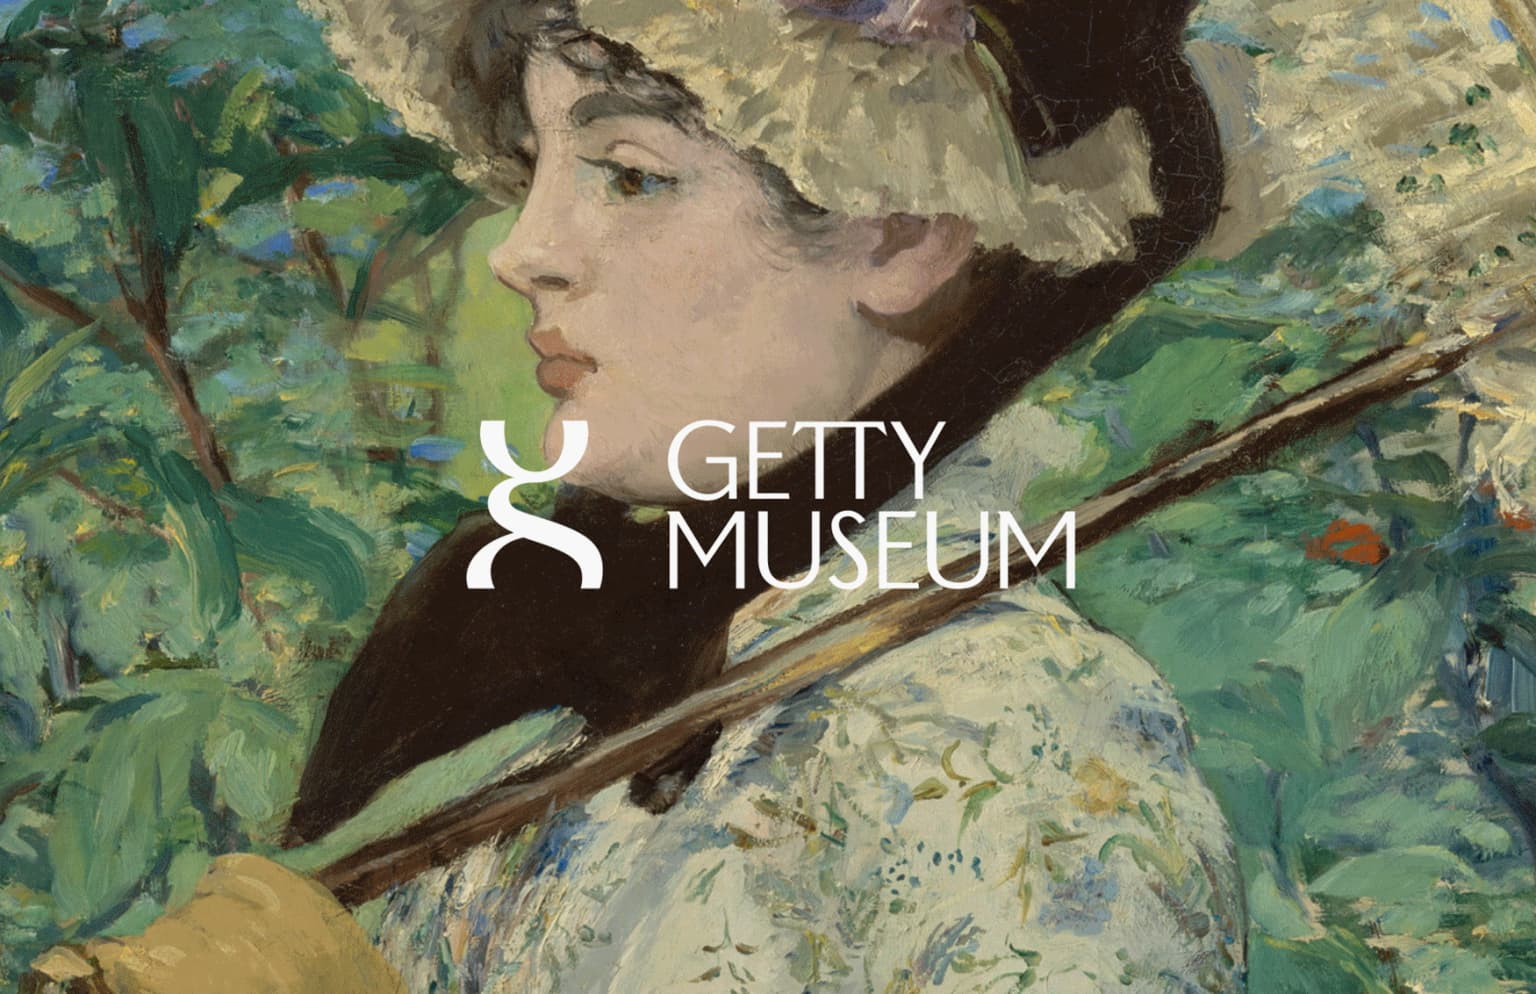 Getty Museum Rebrand (fictional)